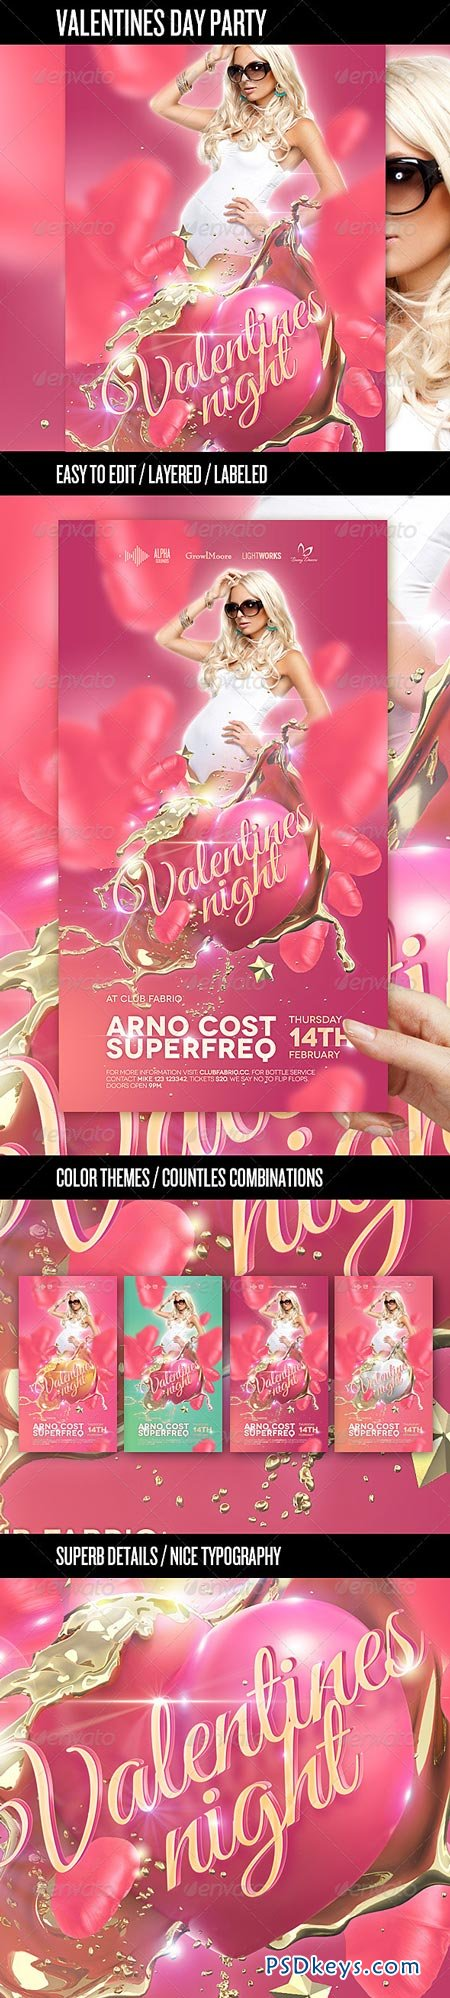 Valentine's Day Party Flyer Template 3832424